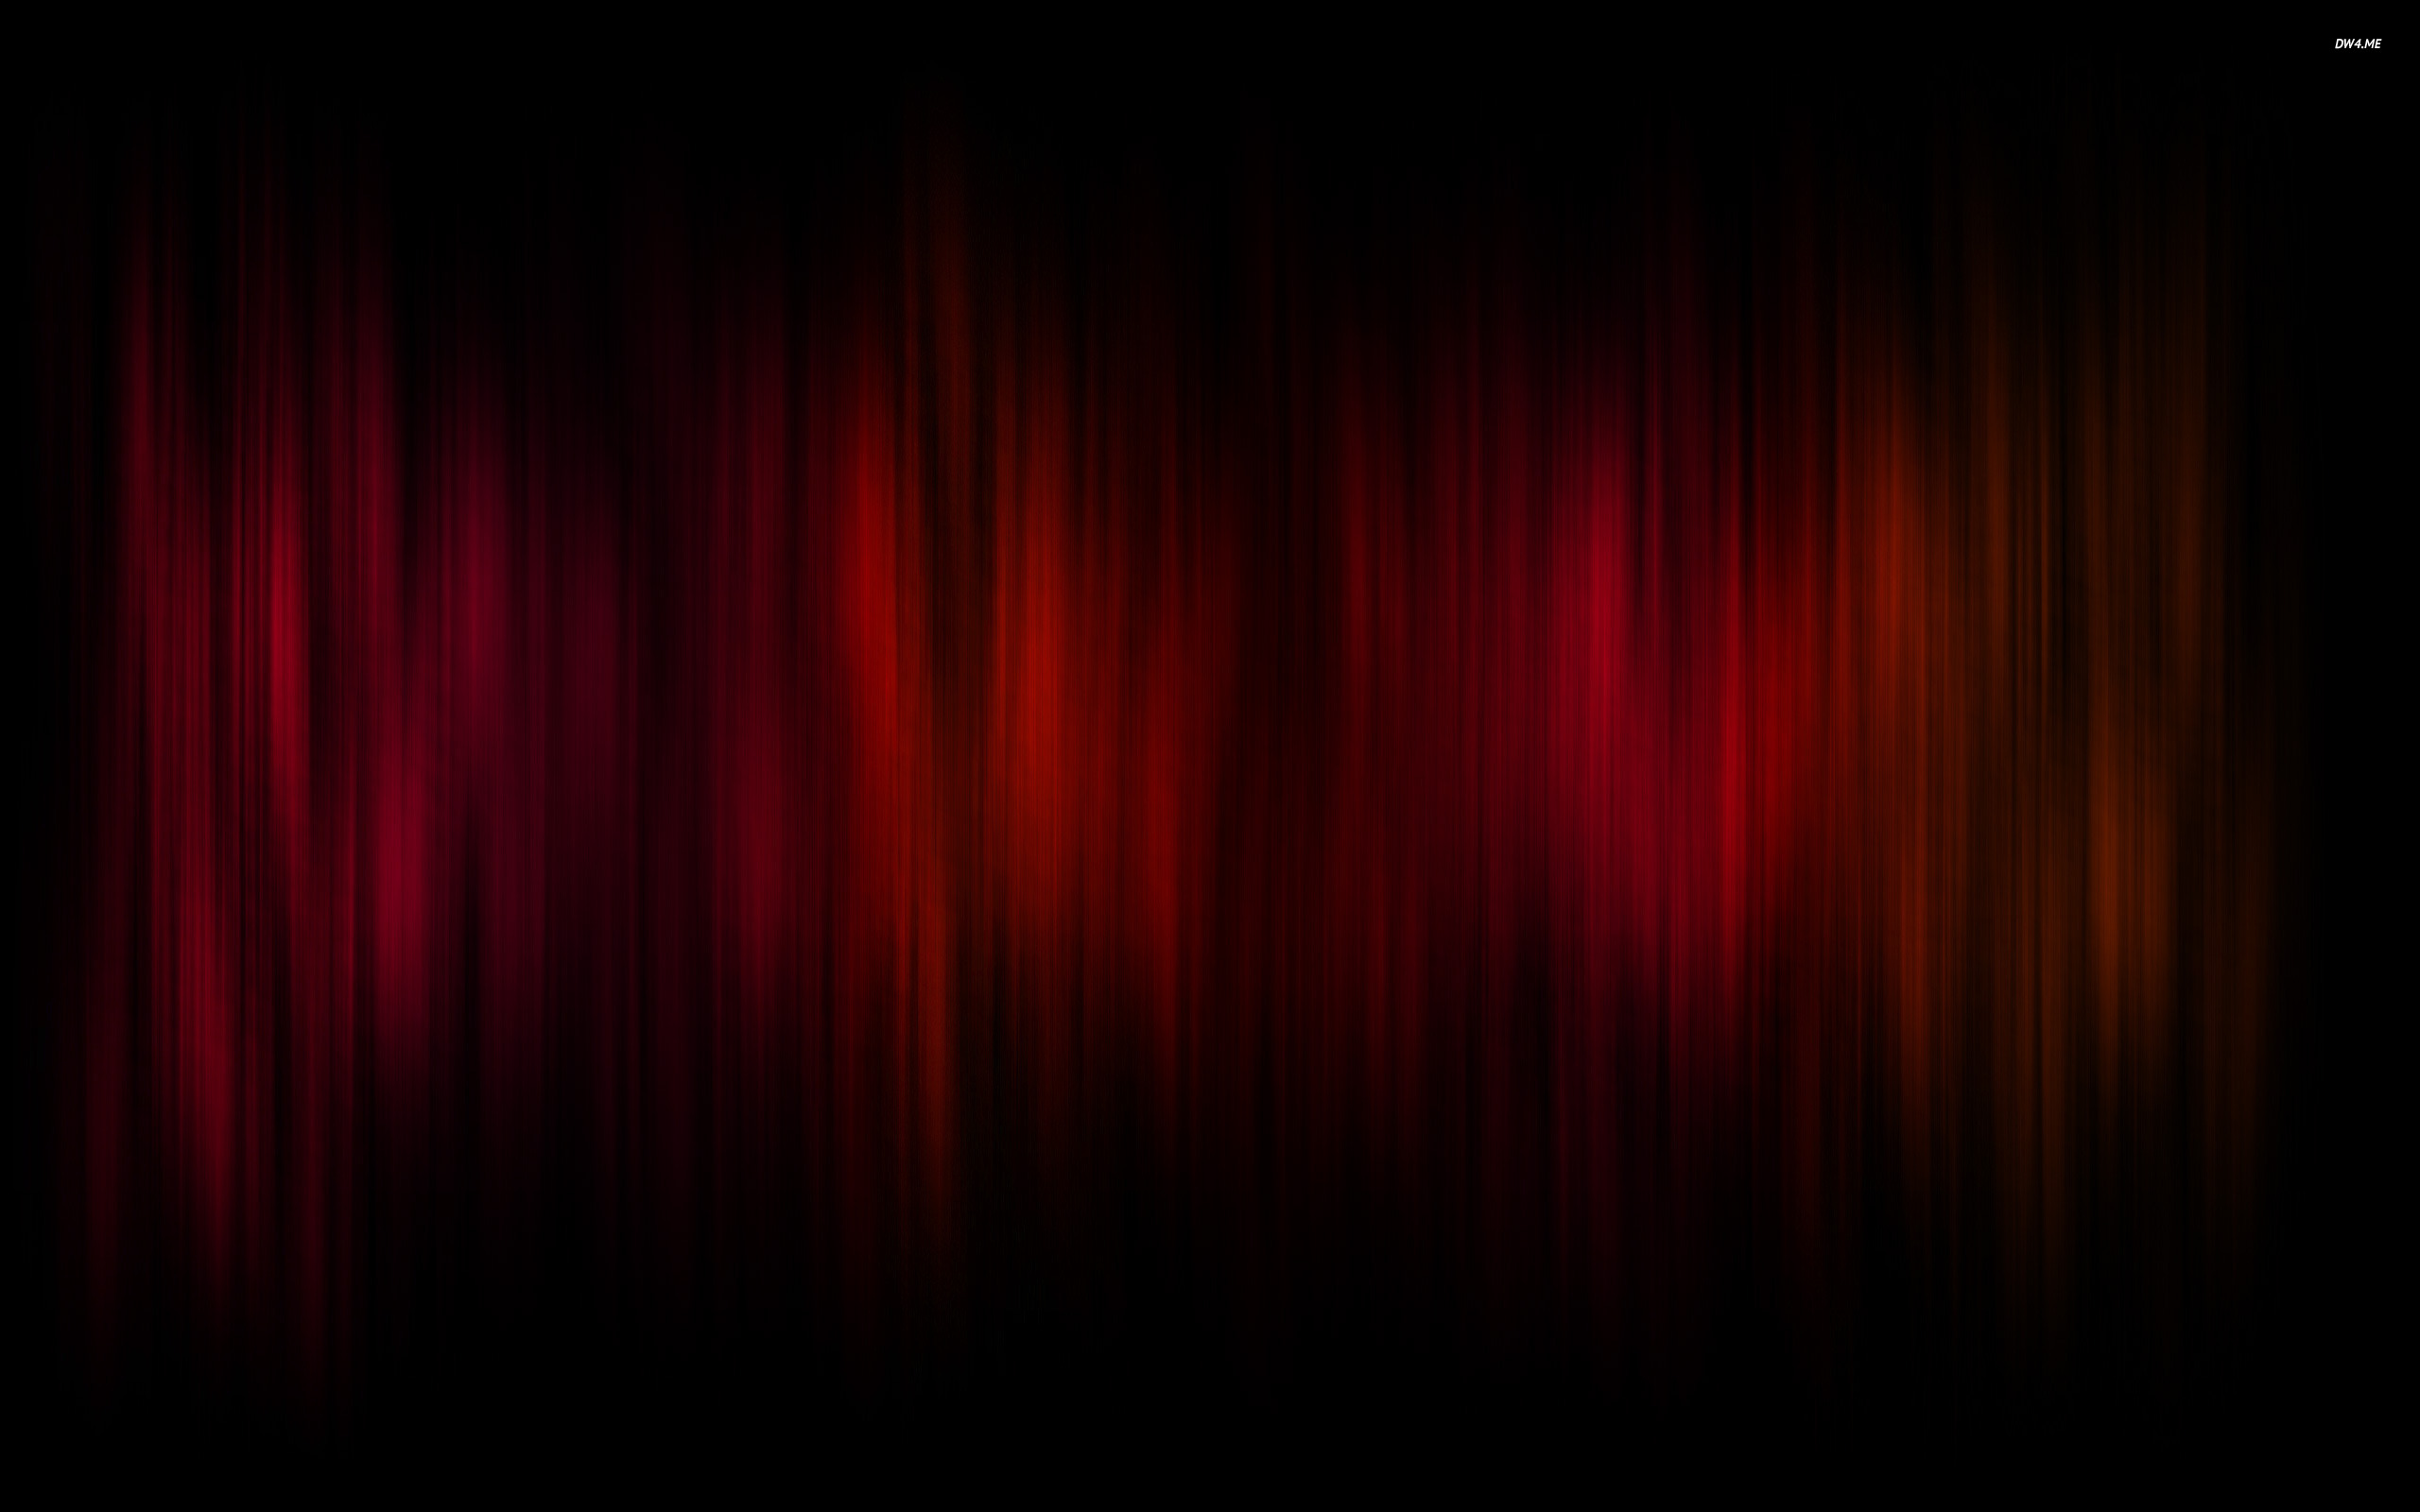 Red fibers wallpaper - Abstract wallpapers - #292